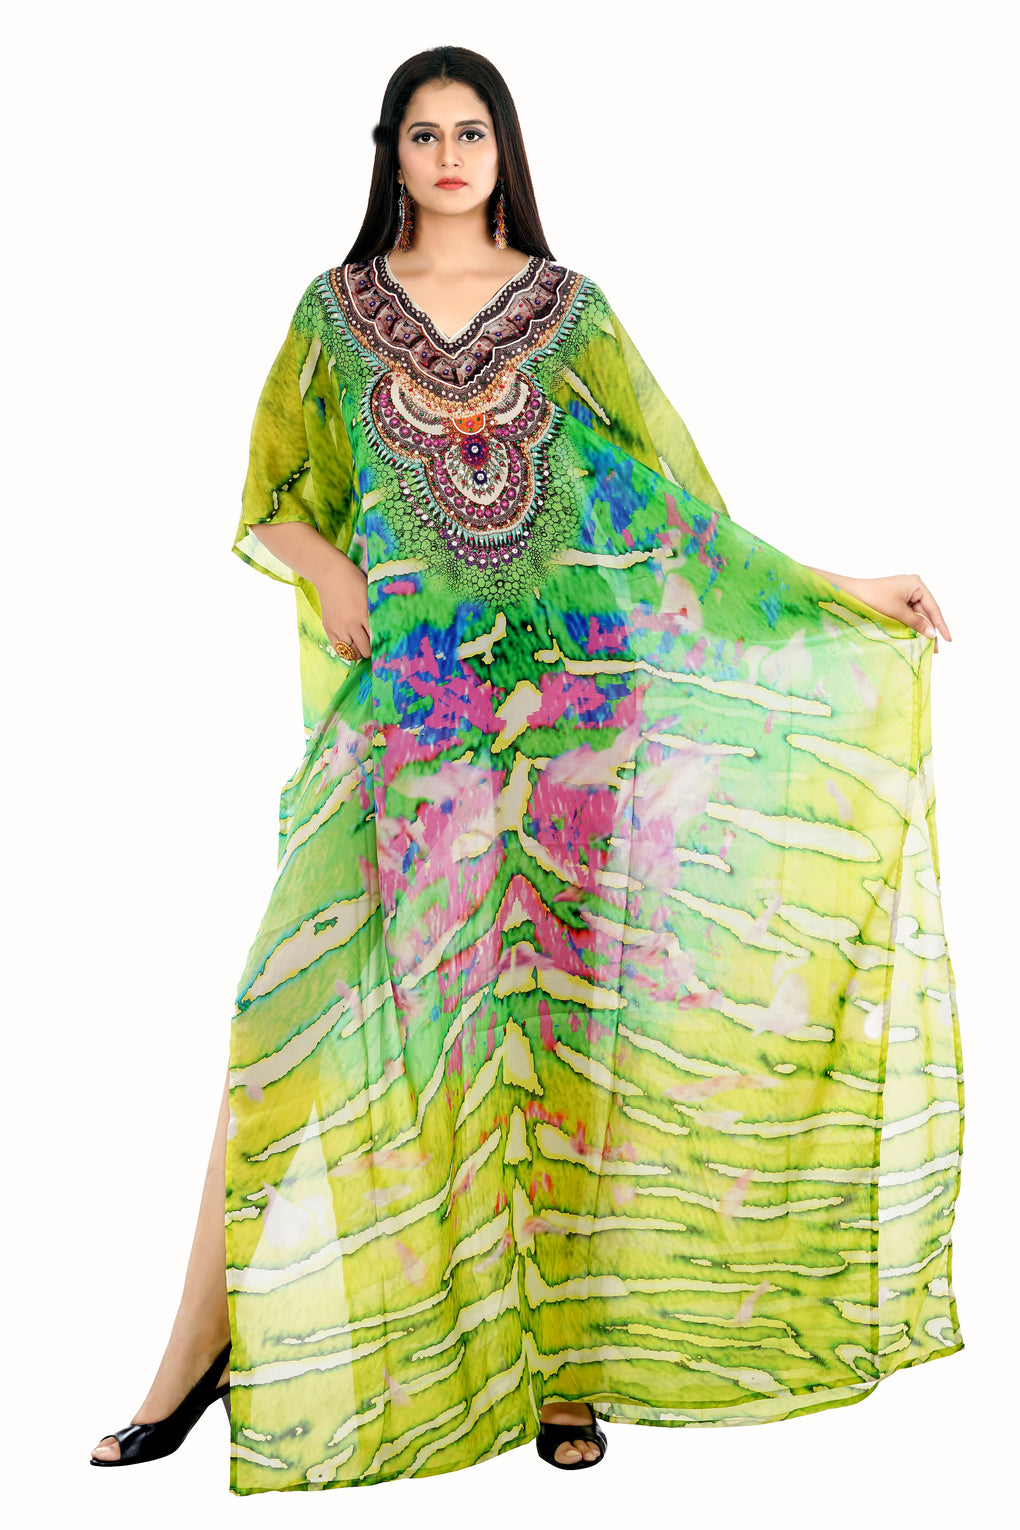 Green Camouflage Print Silk Kaftan Dress designed for Special events and Holidays